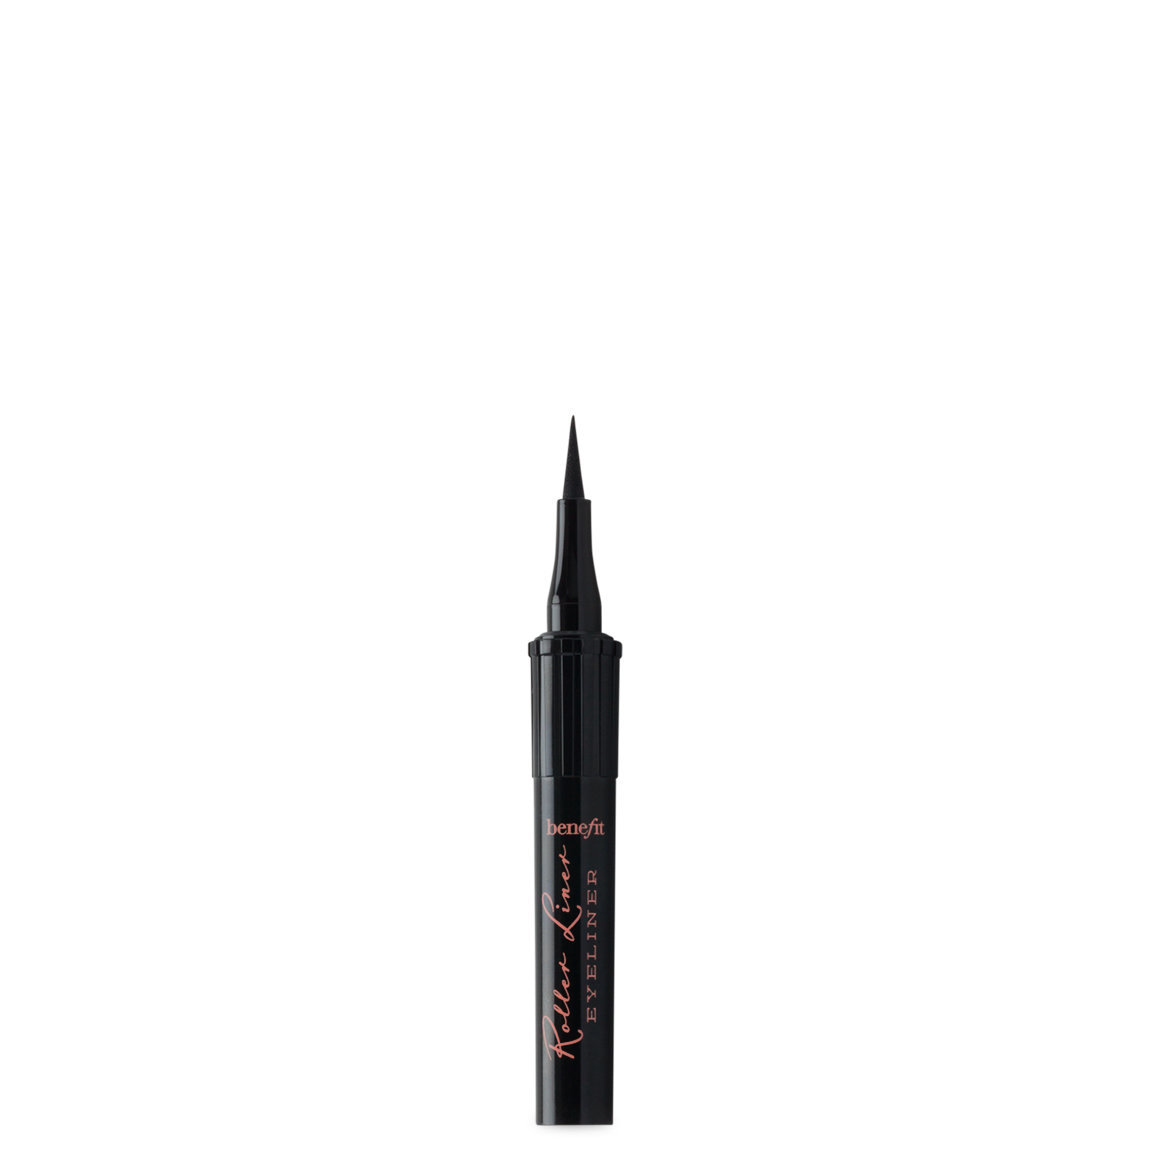 Benefit Cosmetics Roller Liner Liquid Eyeliner Mini product smear.